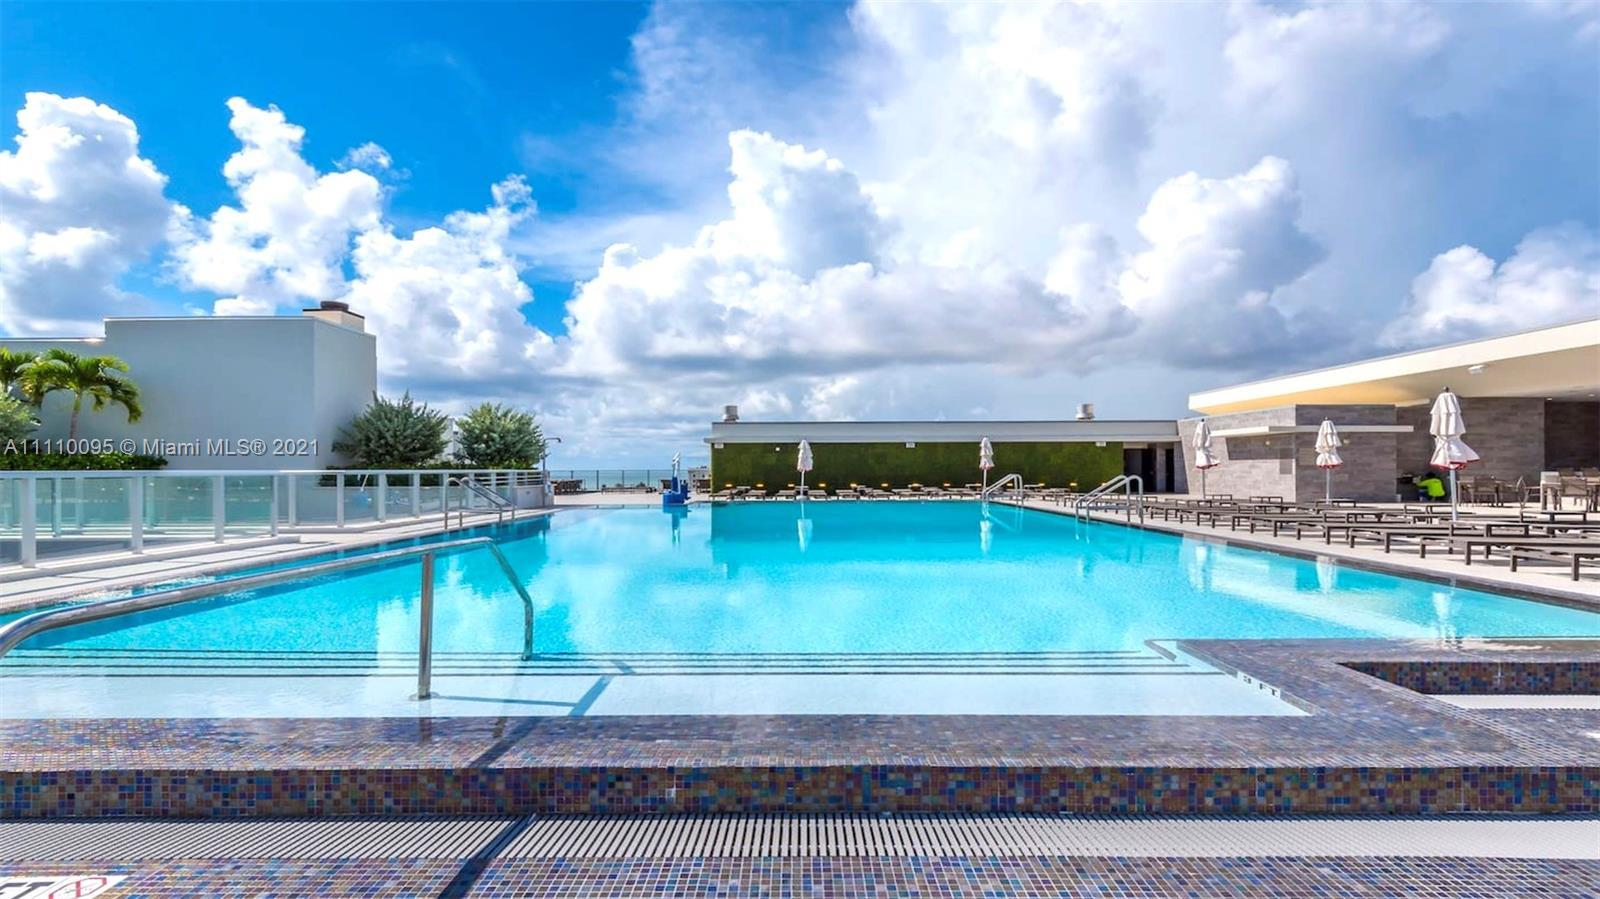 Modern 1 bedroom plus 1 den with 1 bath, all fully furnished on the famous Hollywood Beach boardwalk